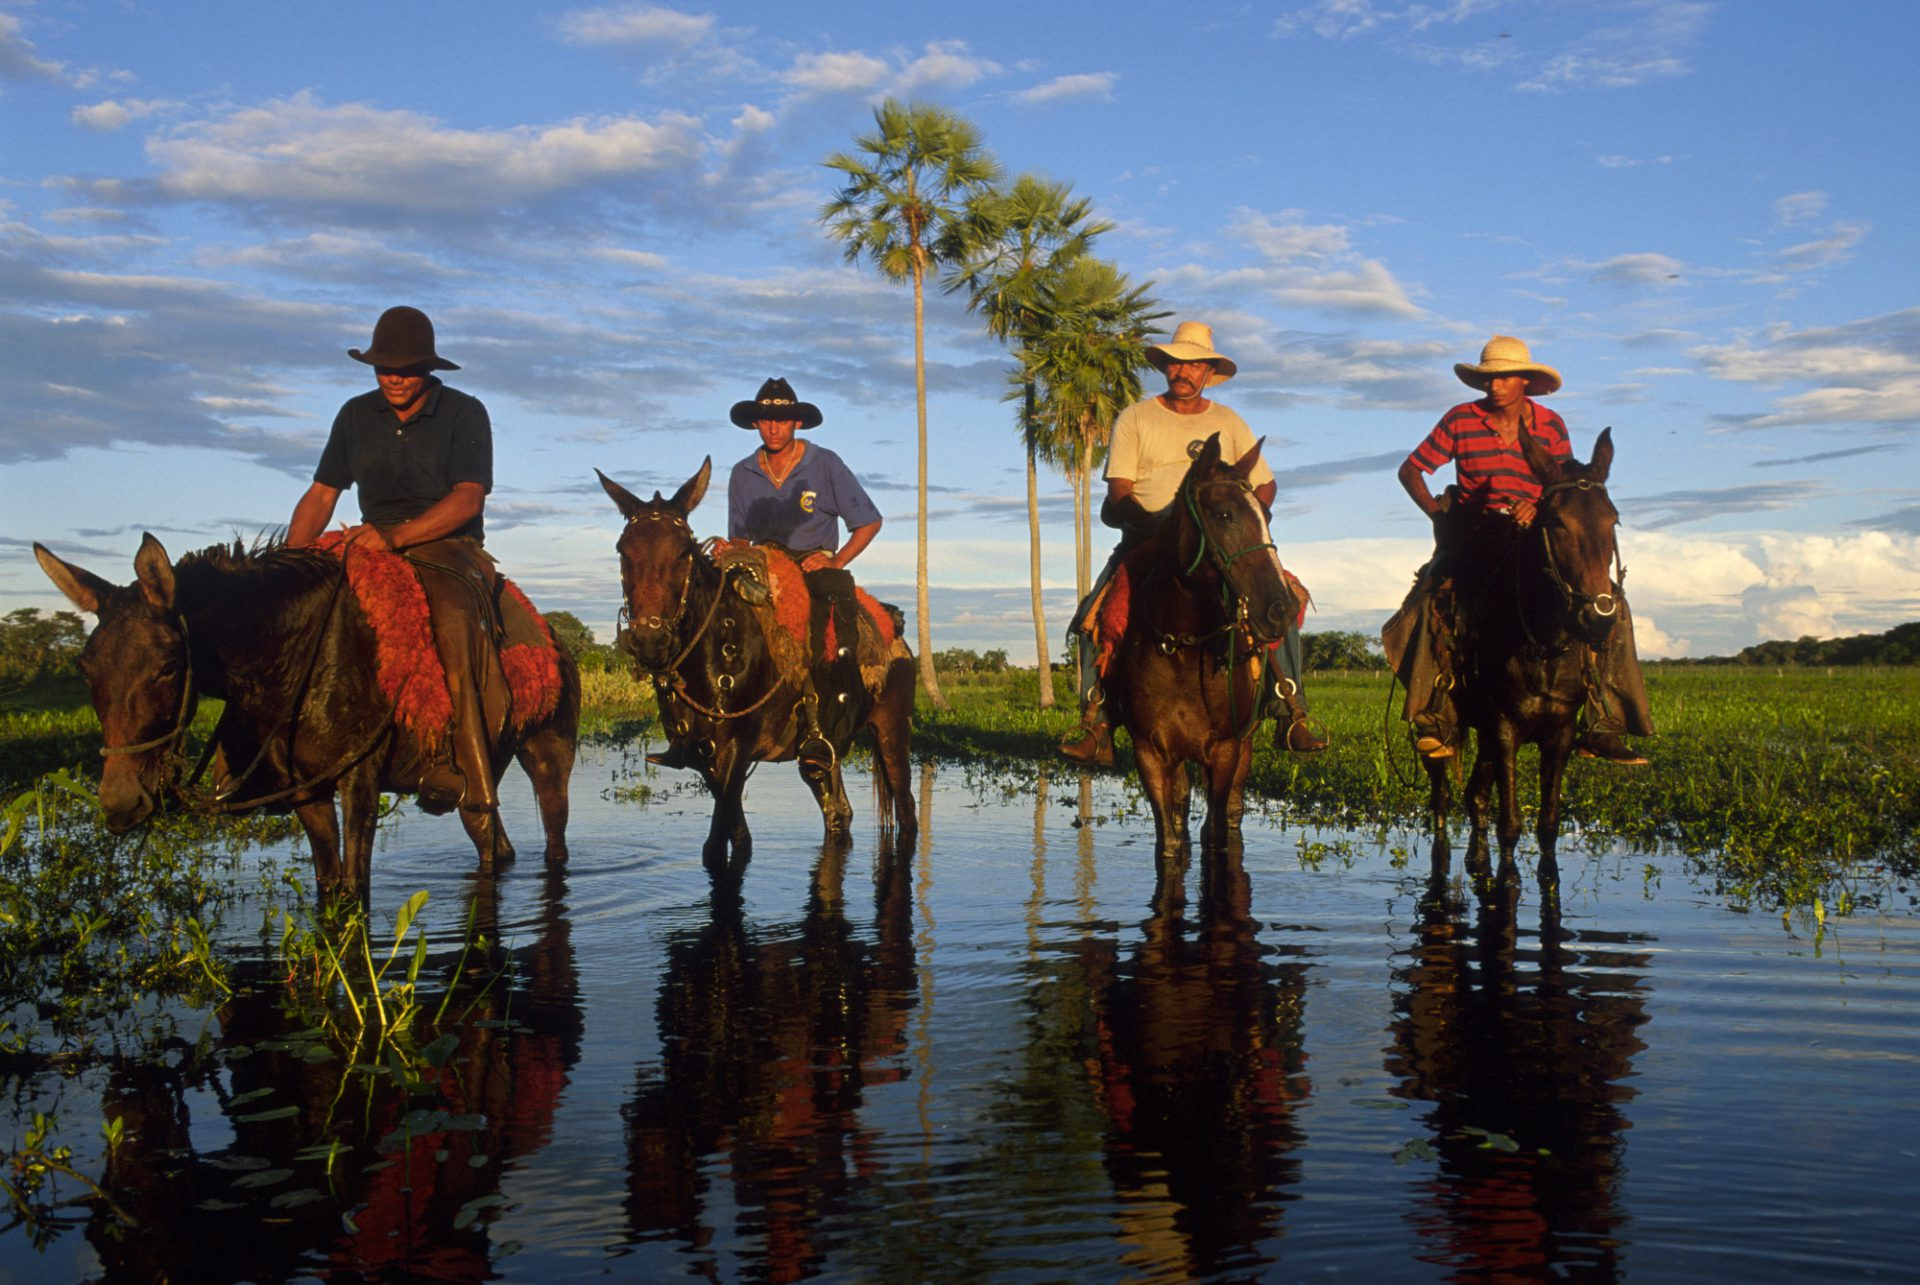 Photo: Pantanieros (cowboys) on horseback during the wet season at Caiman Ranch in Brazil's Pantanal.